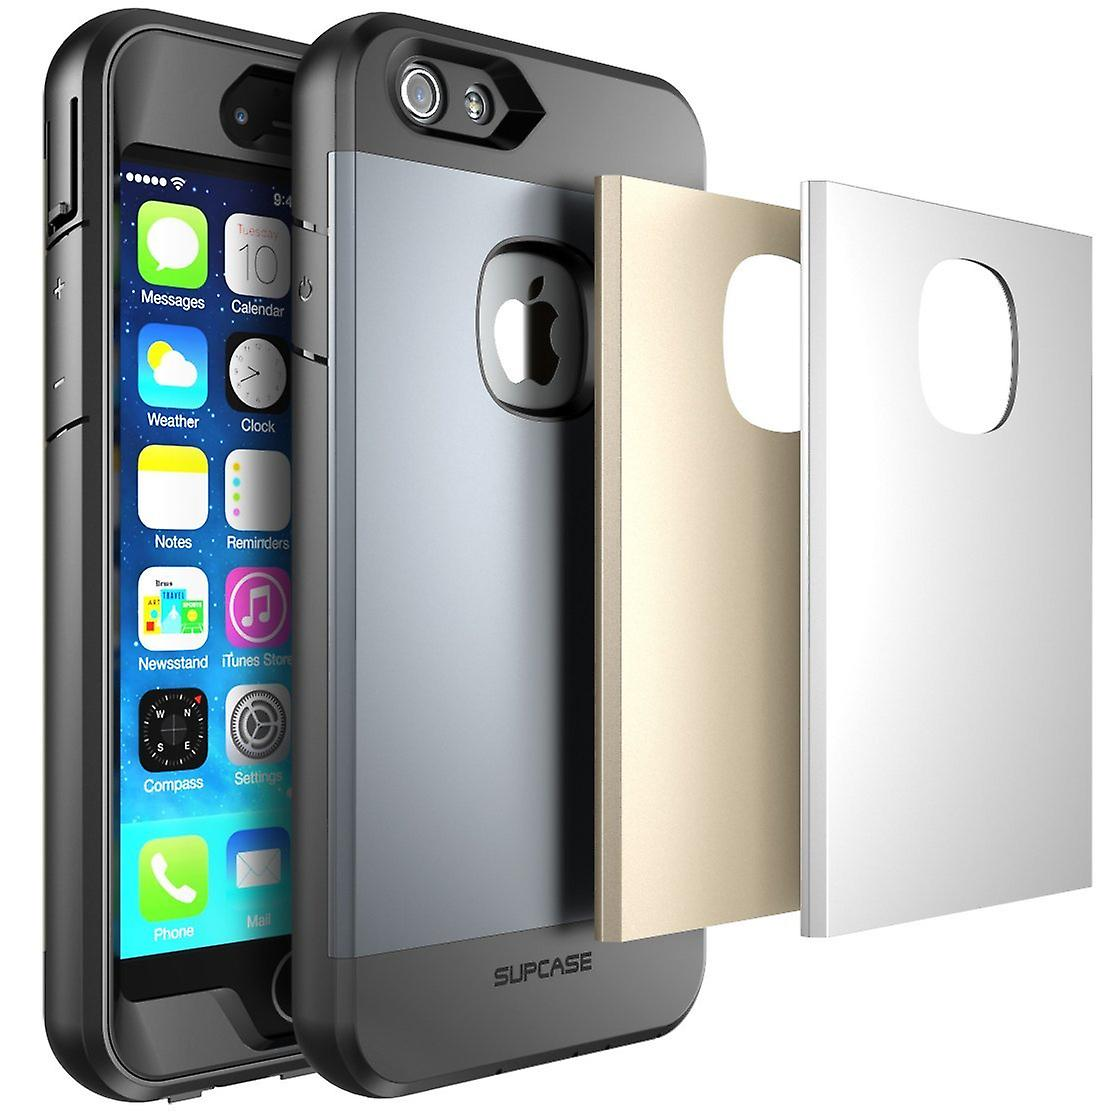 SUPCASE Apple iPhone 6 Plus 5.5 inch Case - Aegis Ultra-thin Water Resistant, Dust and Impact Proof Protective Cover